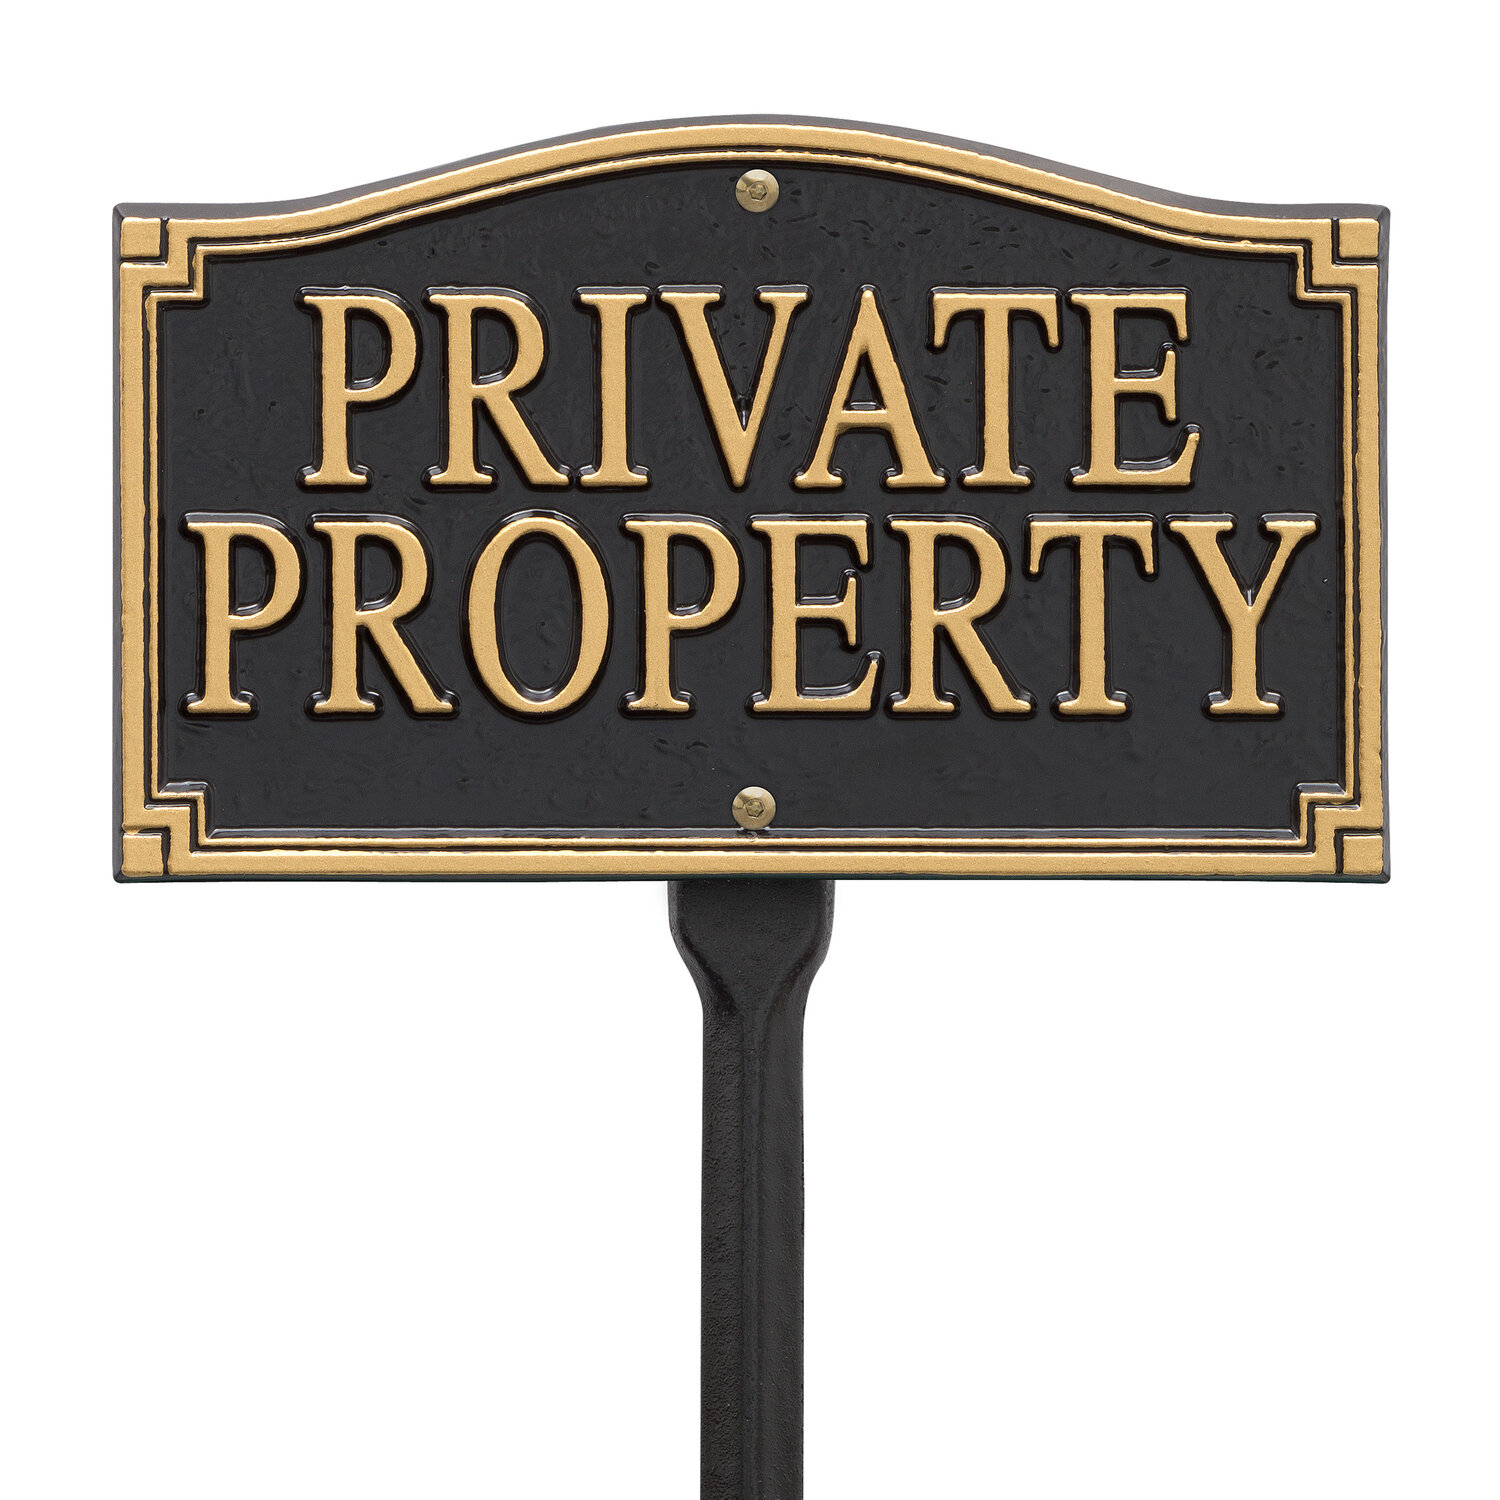 Whitehall Products Private Property Statement Garden Sign Reviews Wayfair